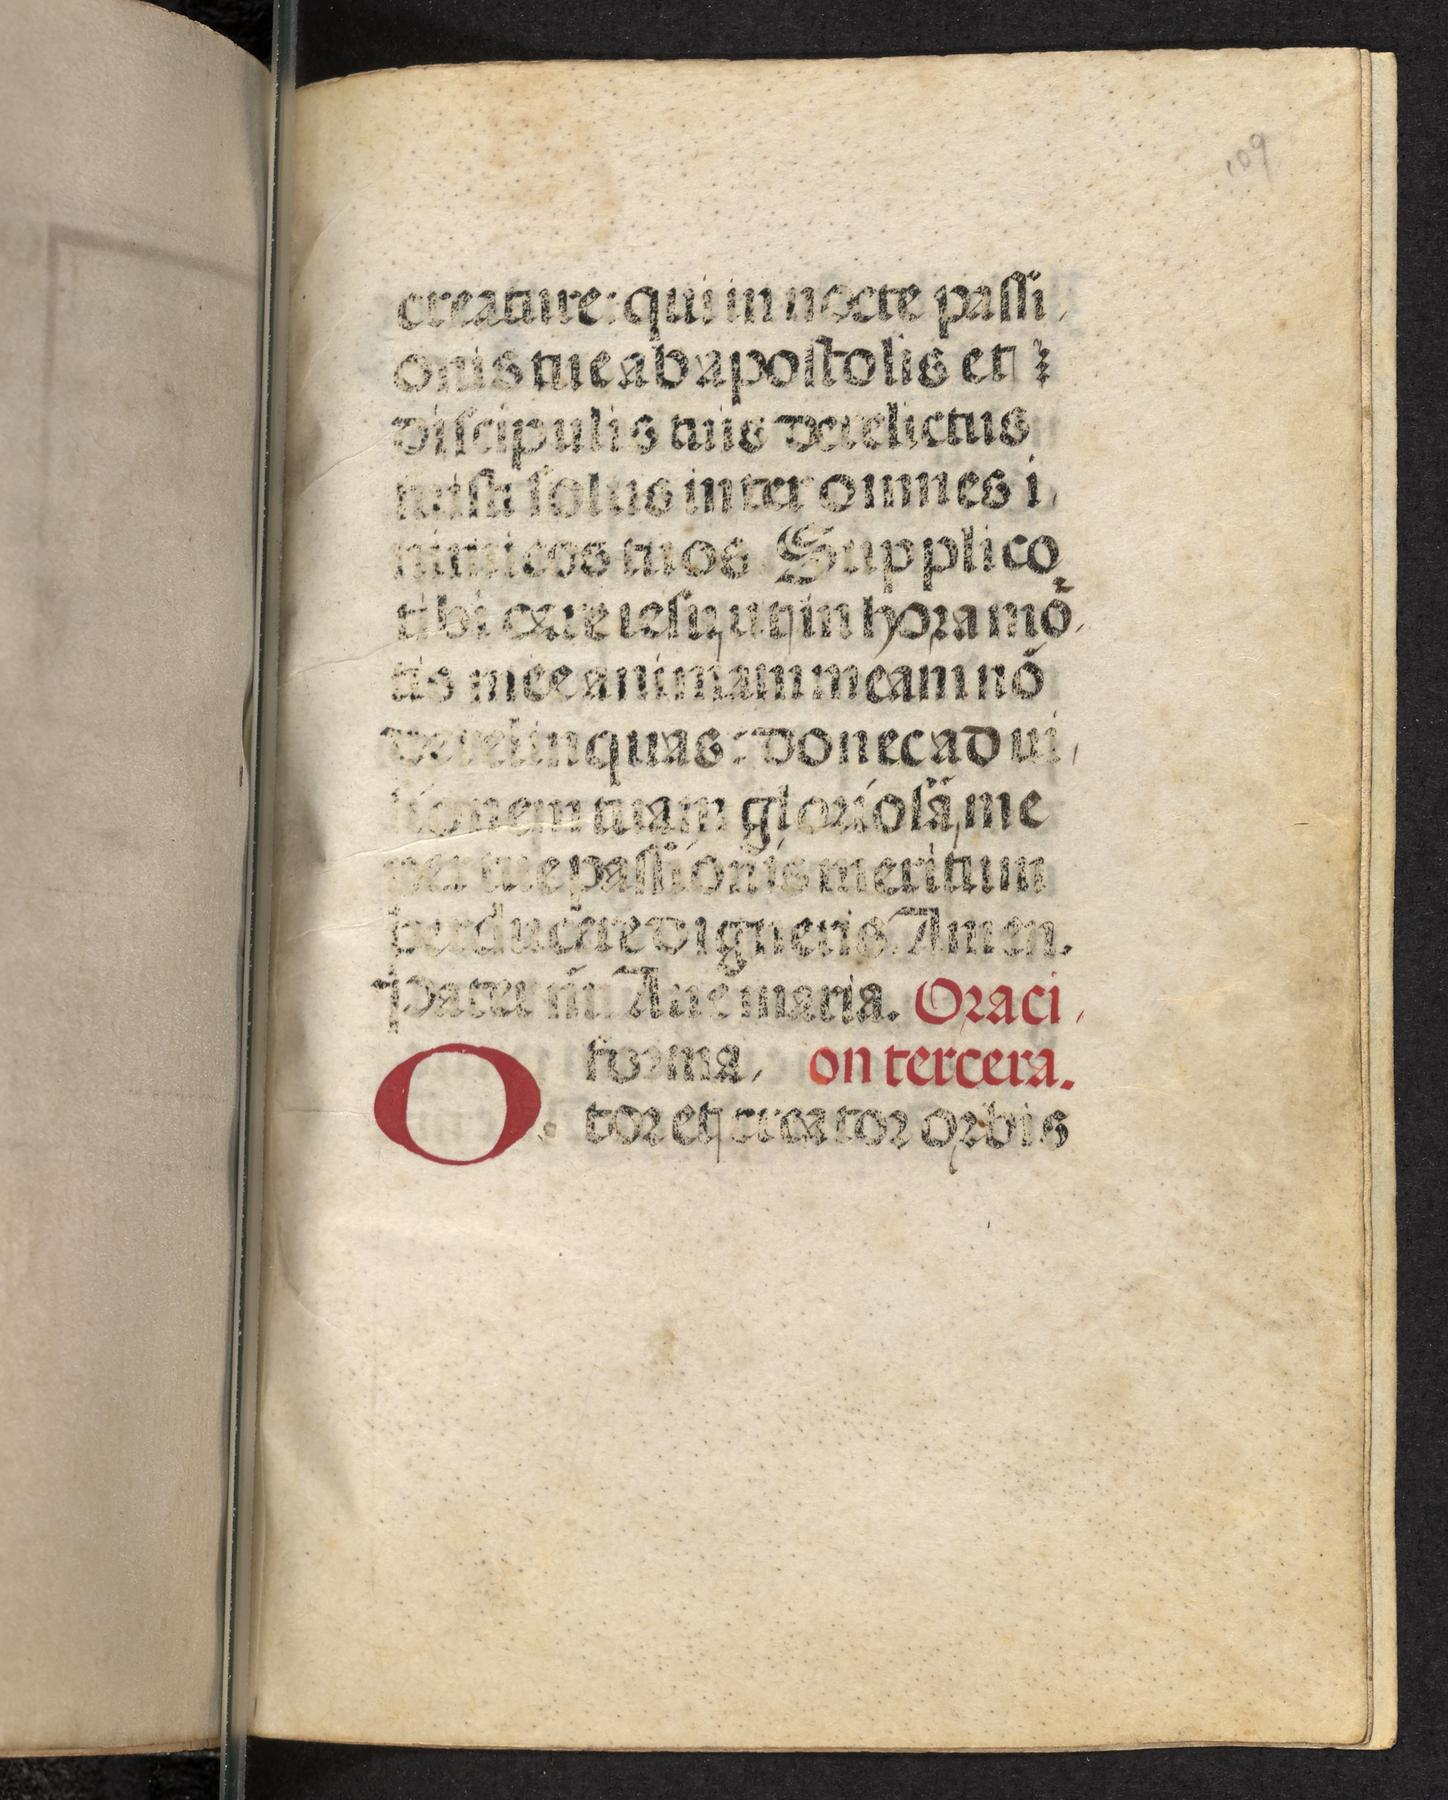 http://openn.library.upenn.edu/Data/0007/lehigh_codex_019/data/web/6689_0224_web.jpg